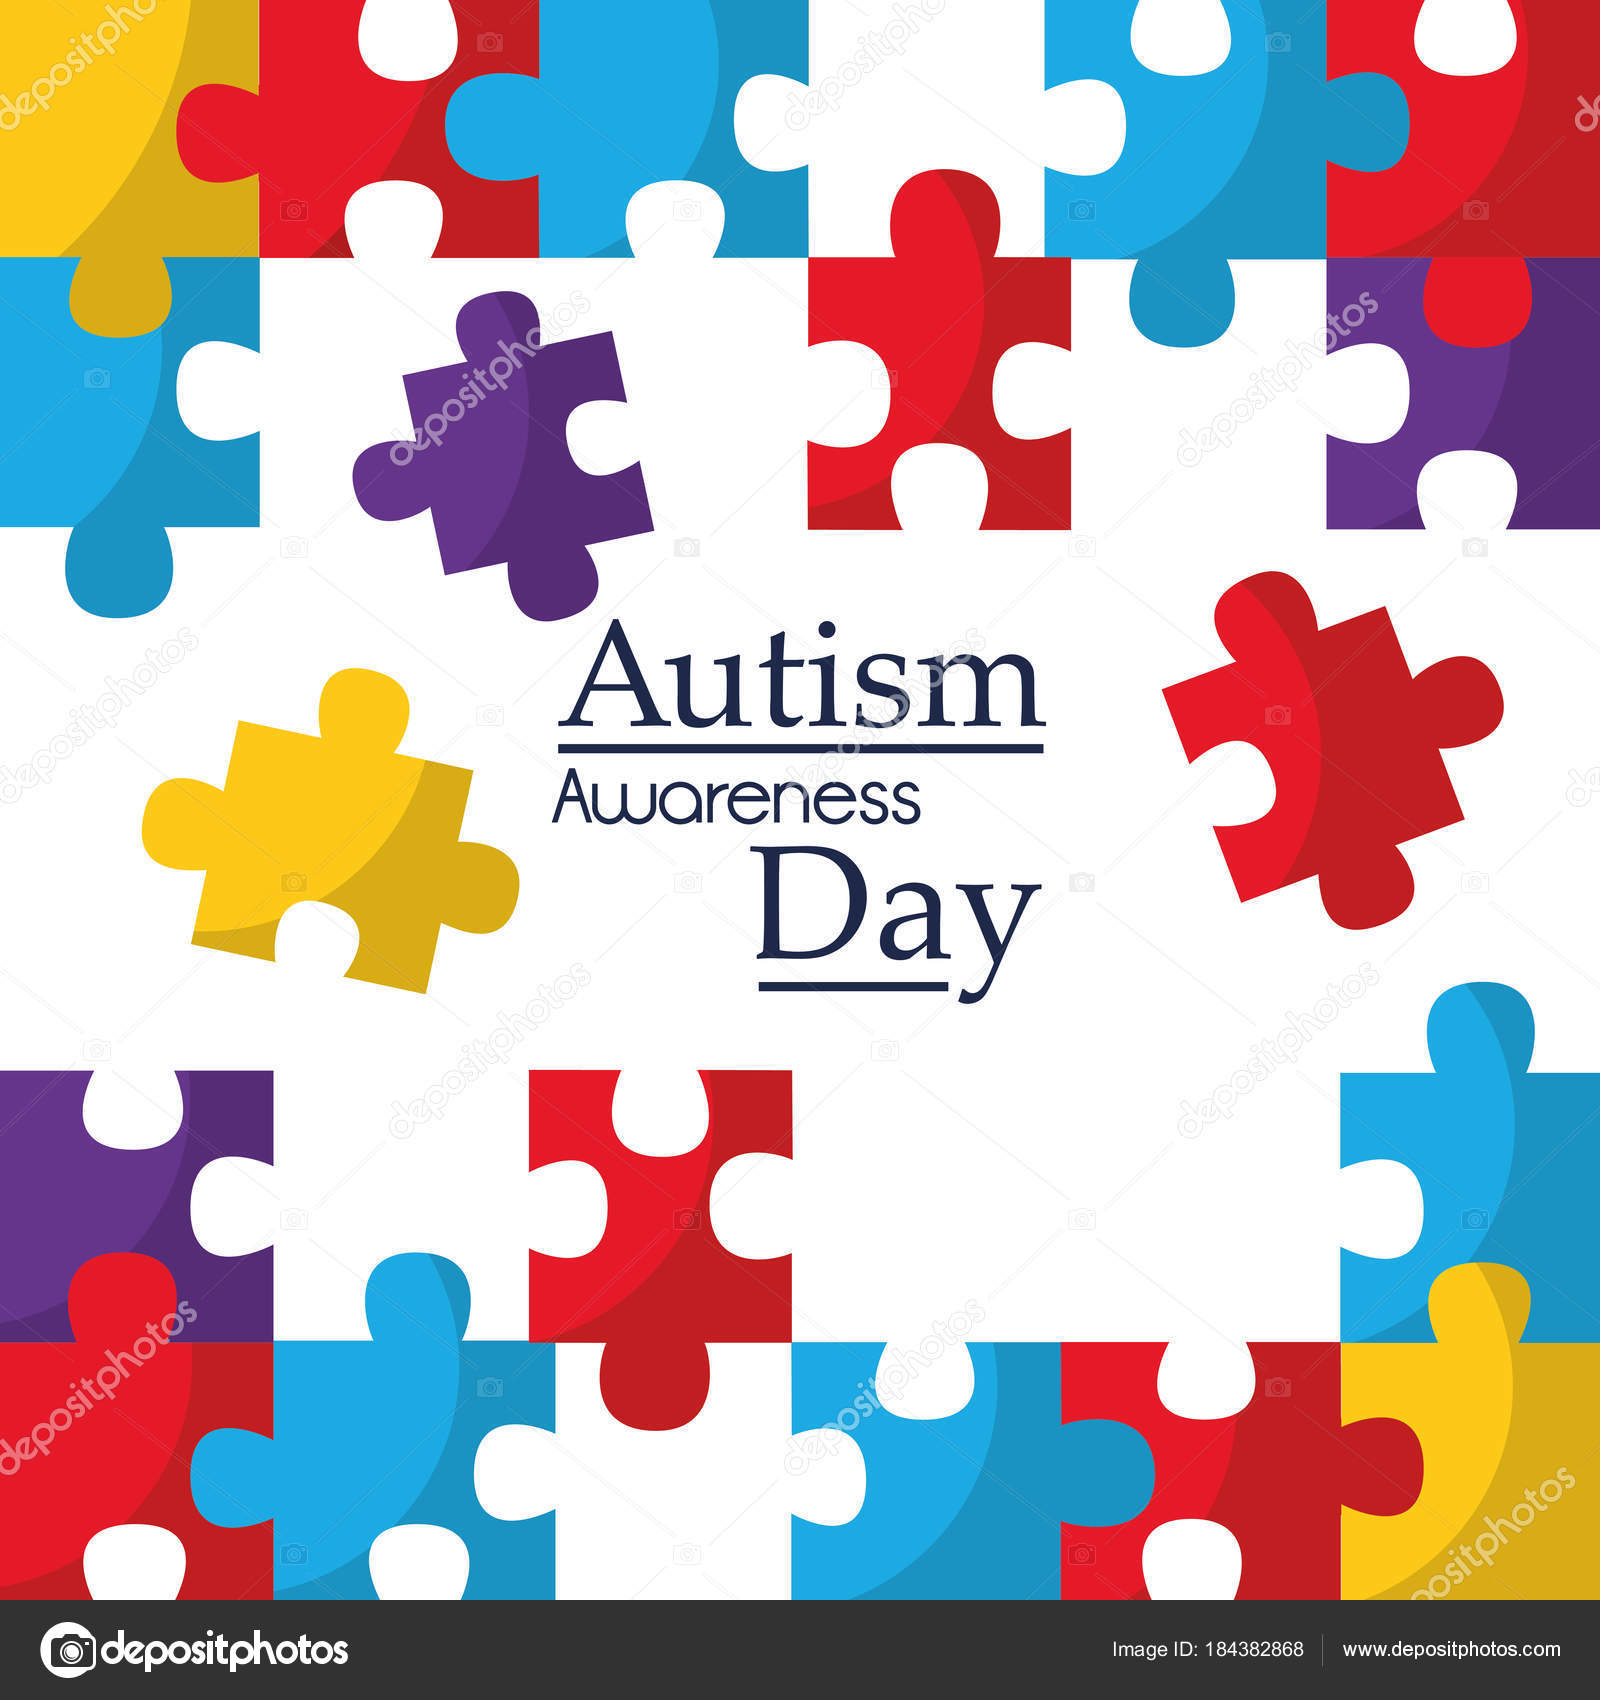 Autism Awareness Poster With Puzzle Pieces Solidarity And Support